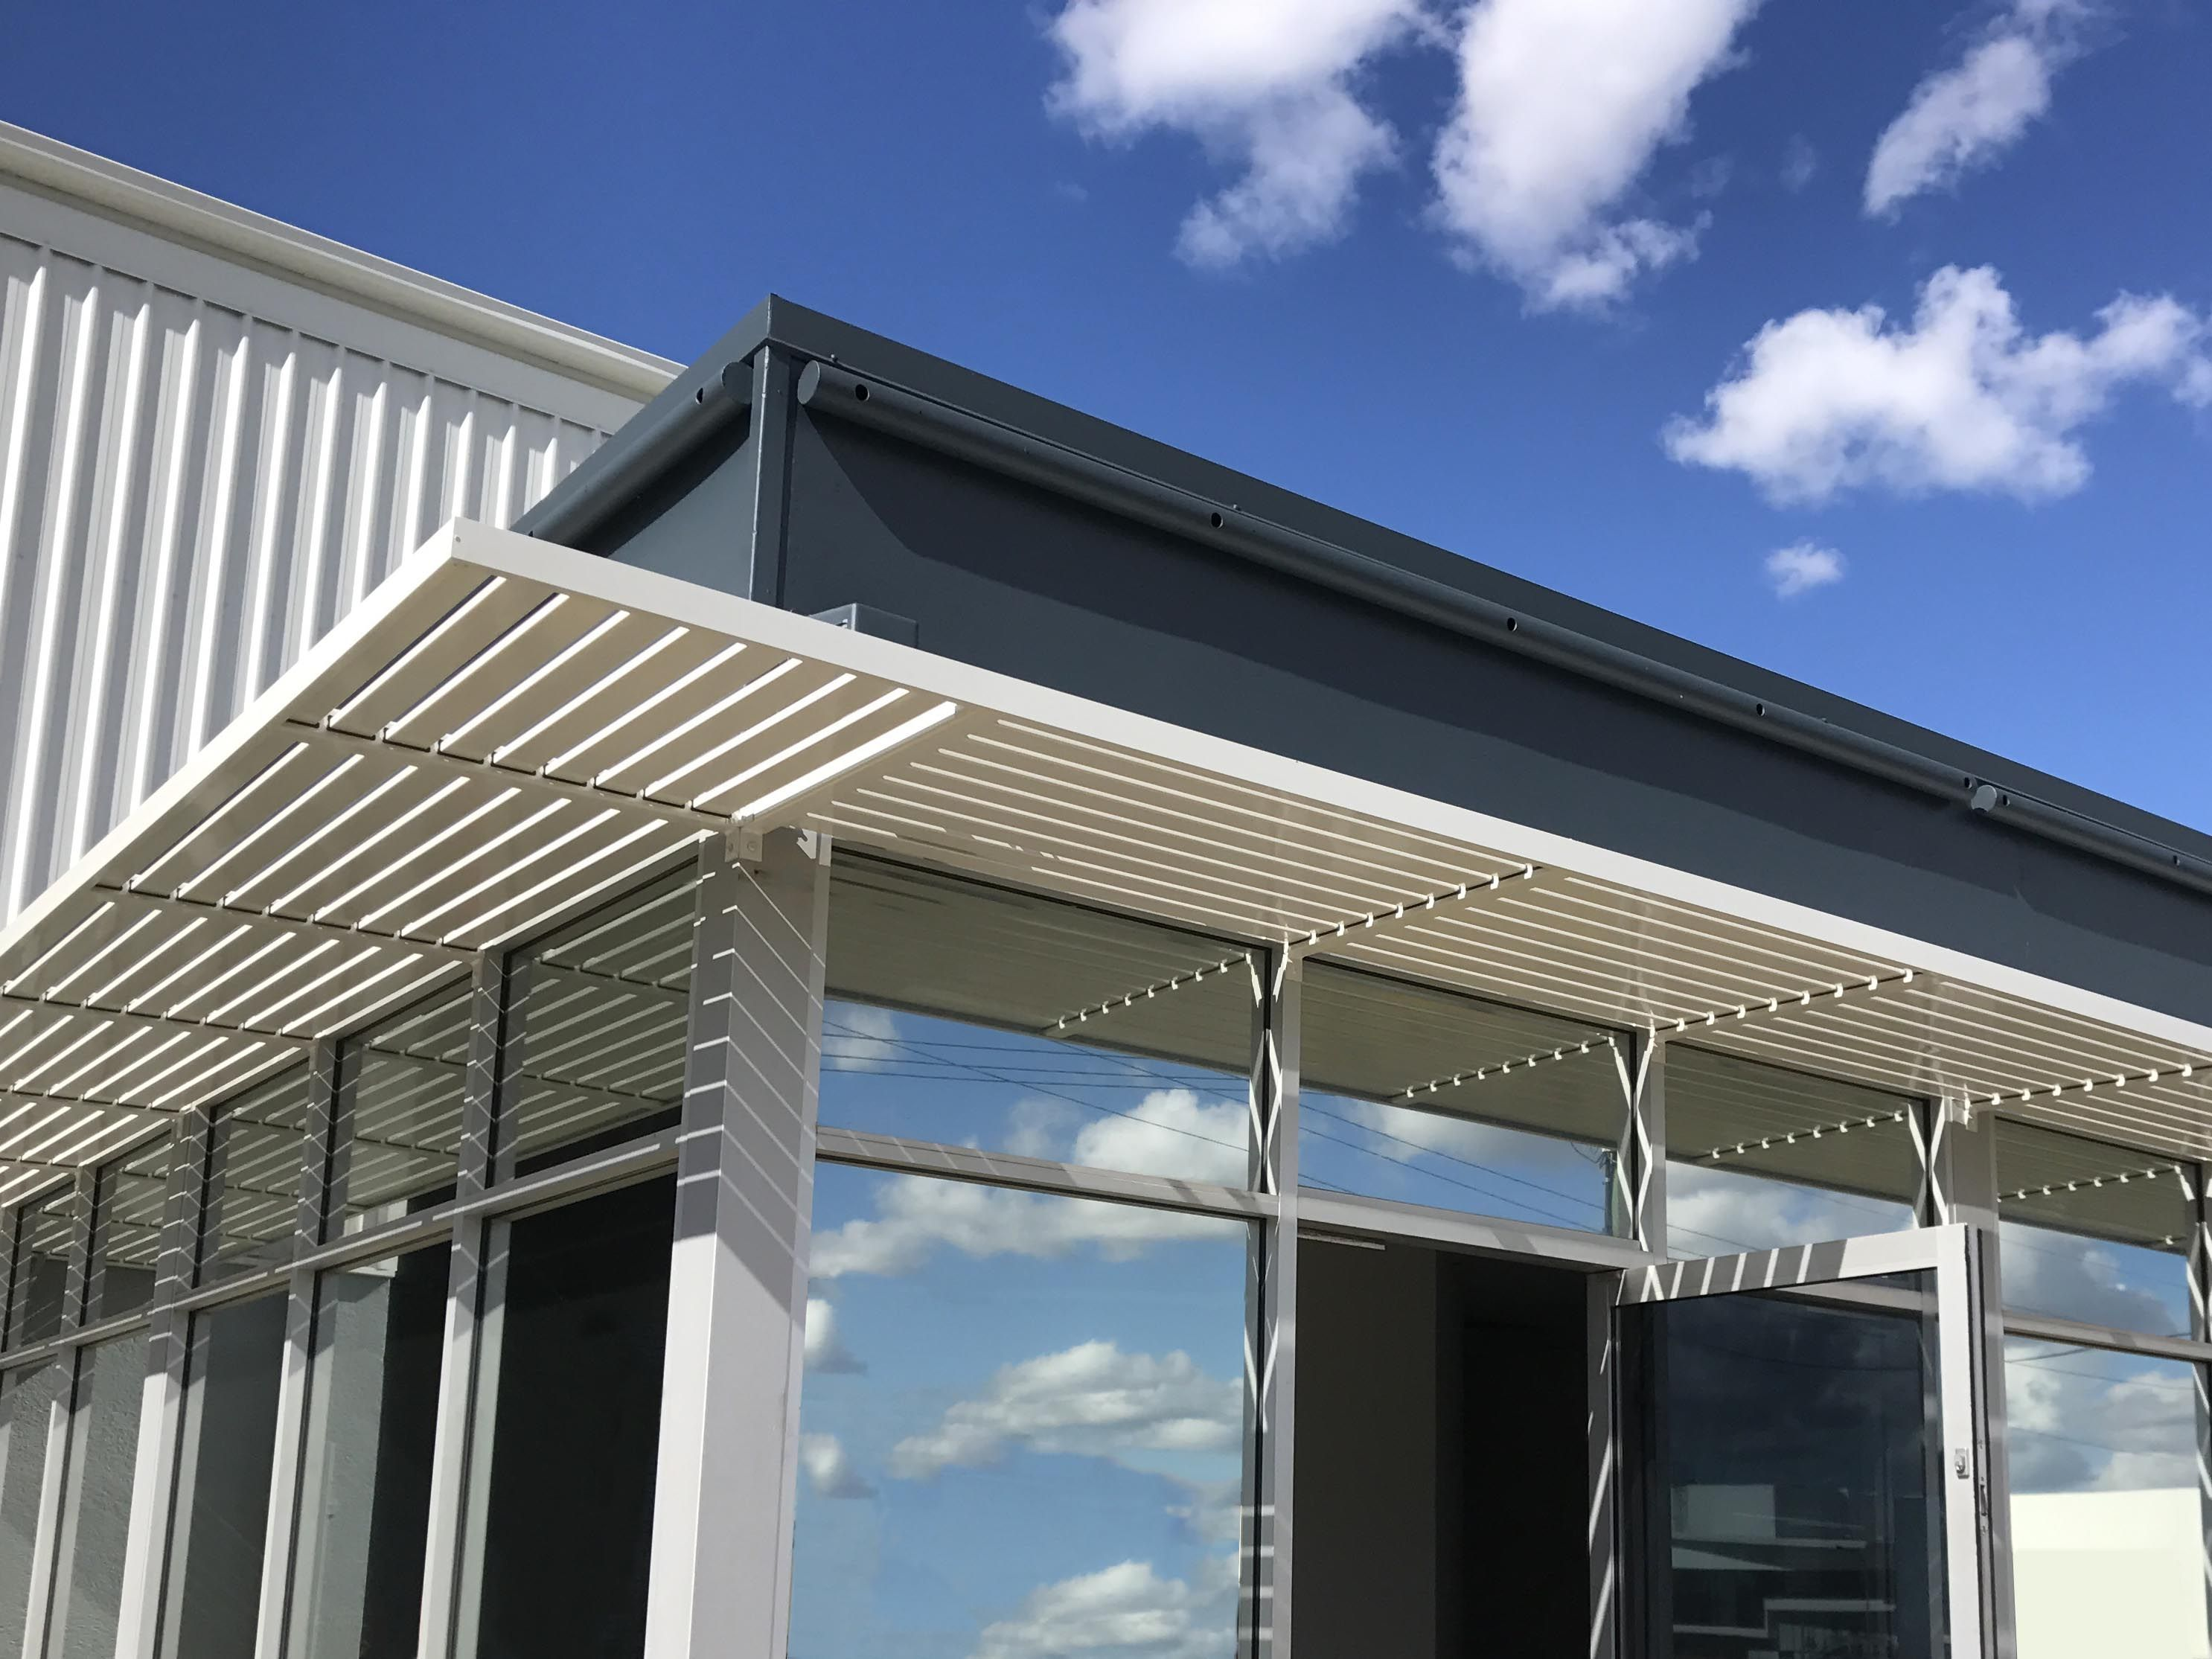 Clik N Fit Slat Awning In 2020 Awning Privacy Screen Slats